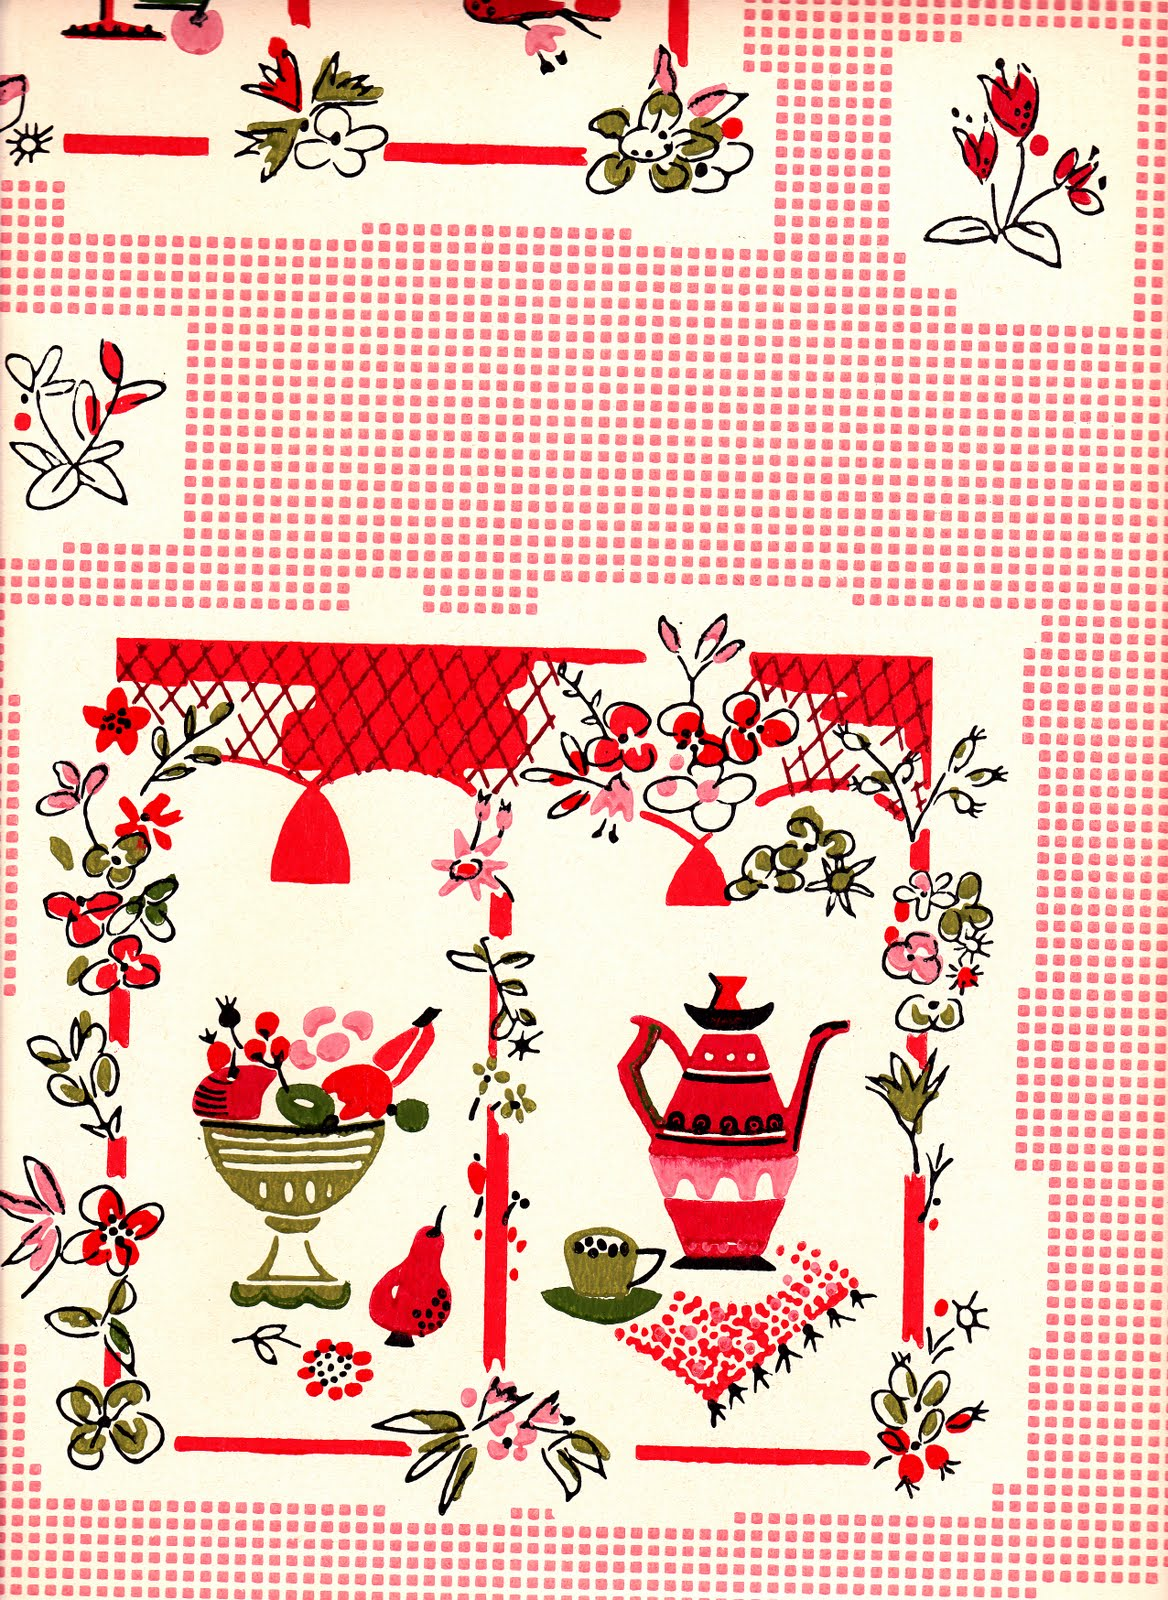 Country Kitchen Wallpaper Patterns Vavandipupus Red Patterned Wallpaper Uk